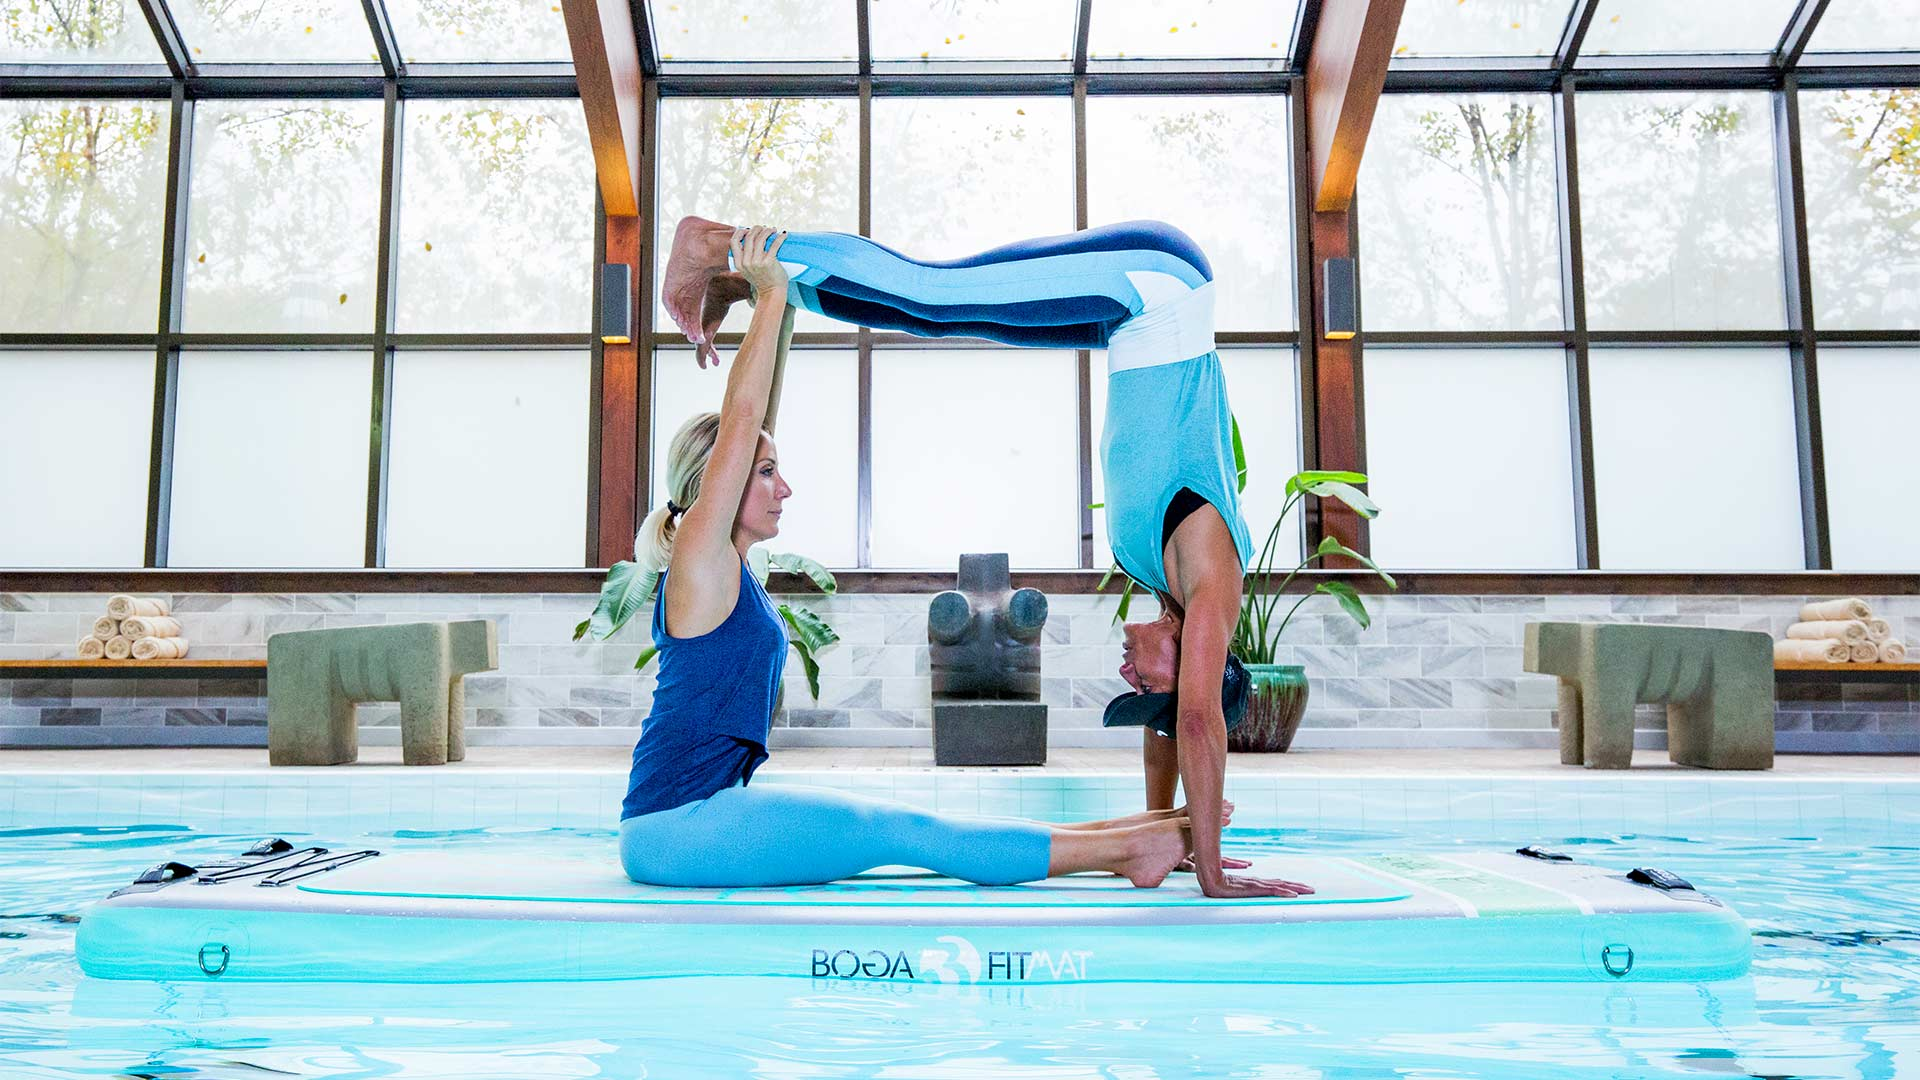 two people doing yoga positions on a floating raft in the pool